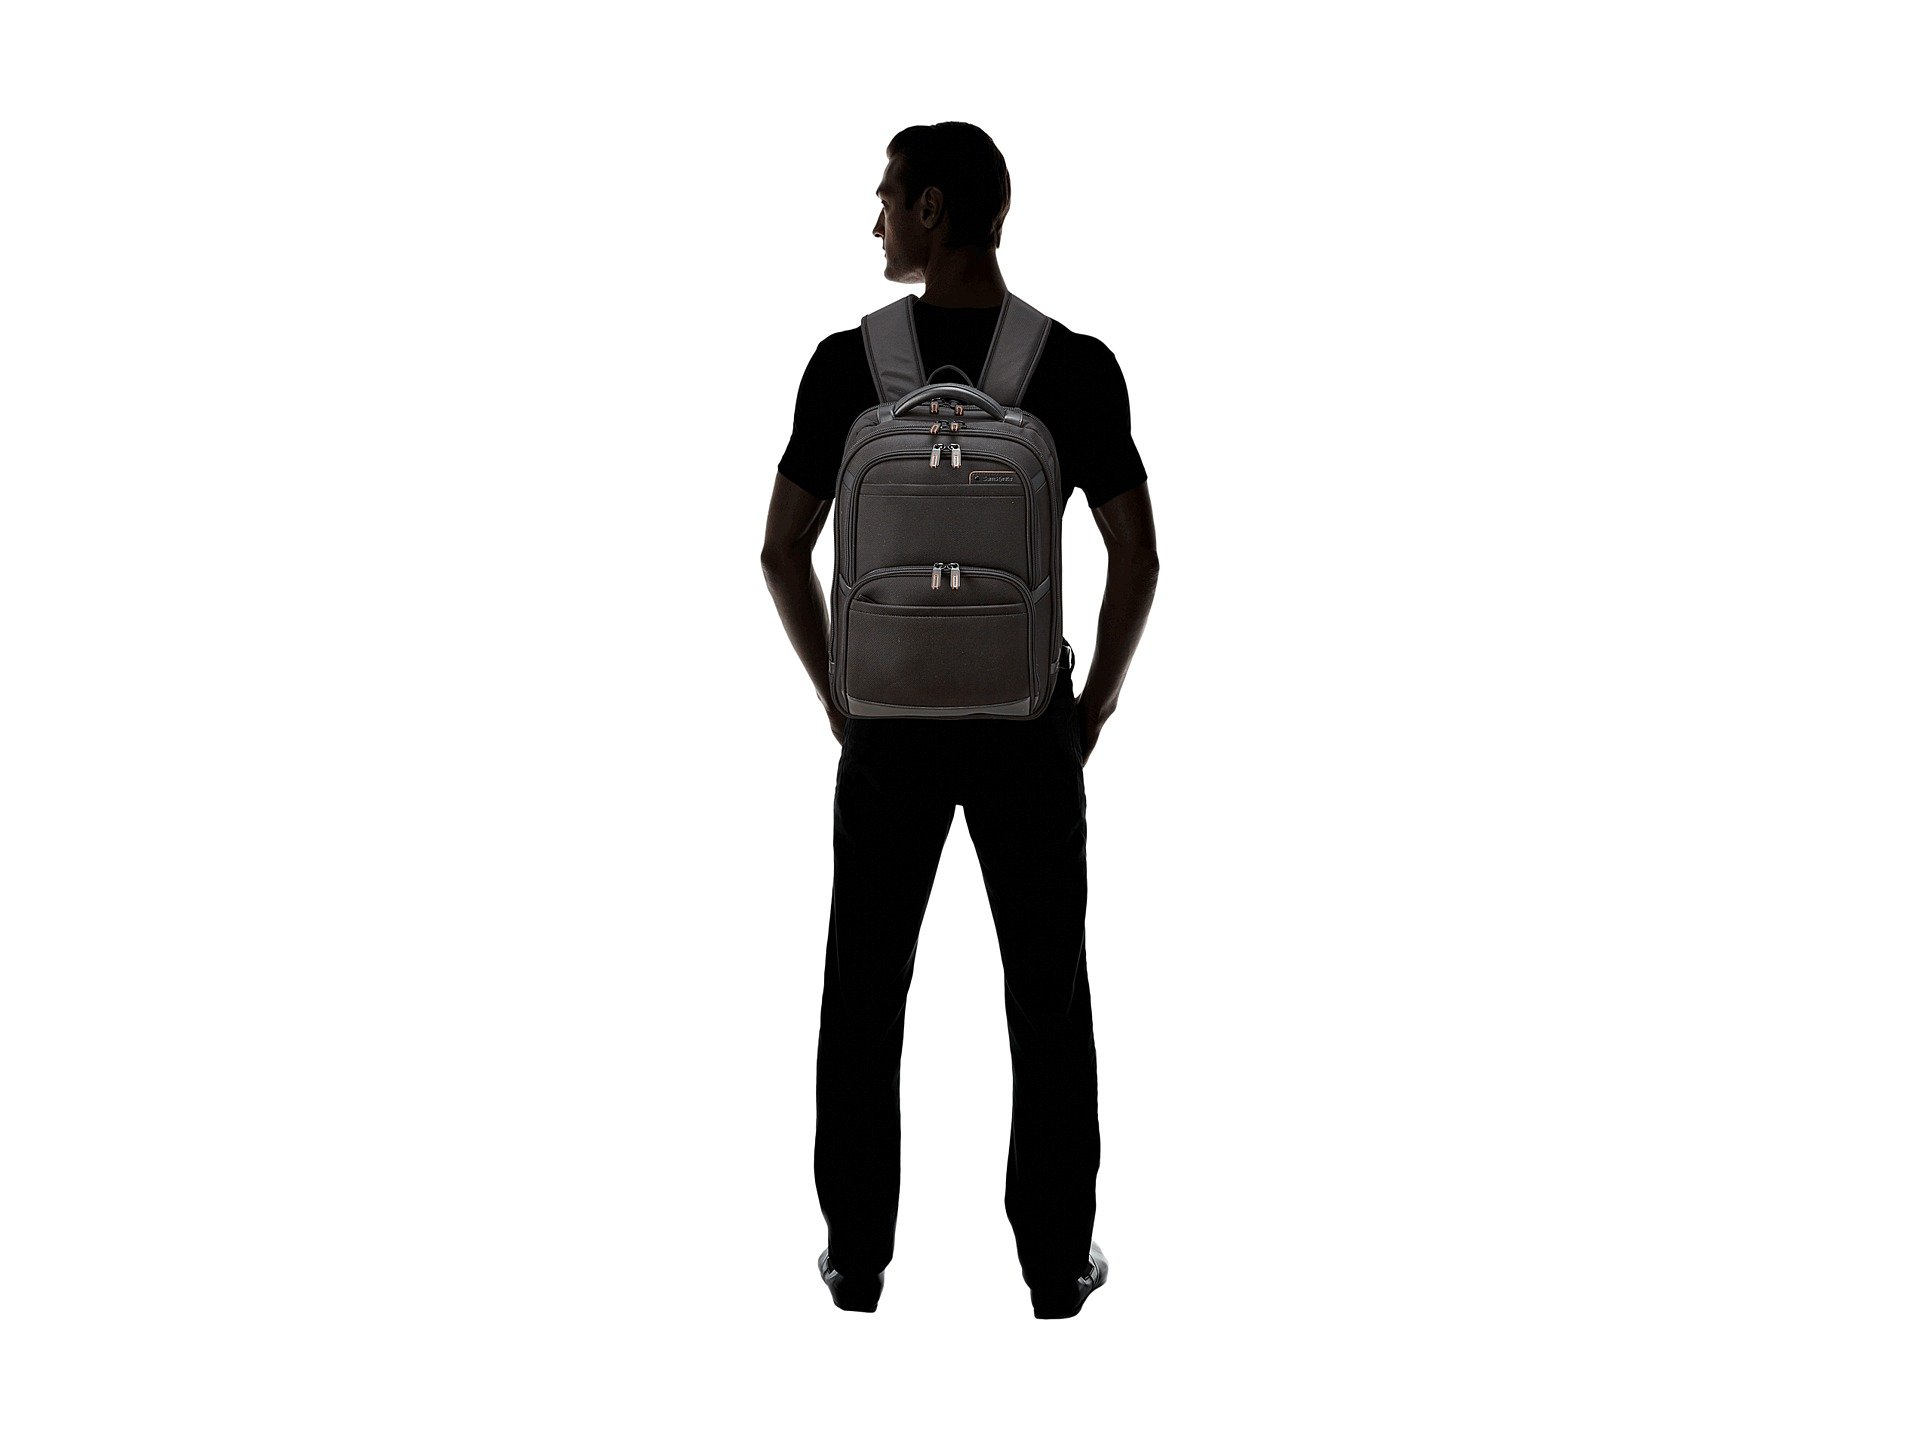 Backpack Dlx Pro tsa Pft Samsonite 4 Black Urban nHUSgn7xq